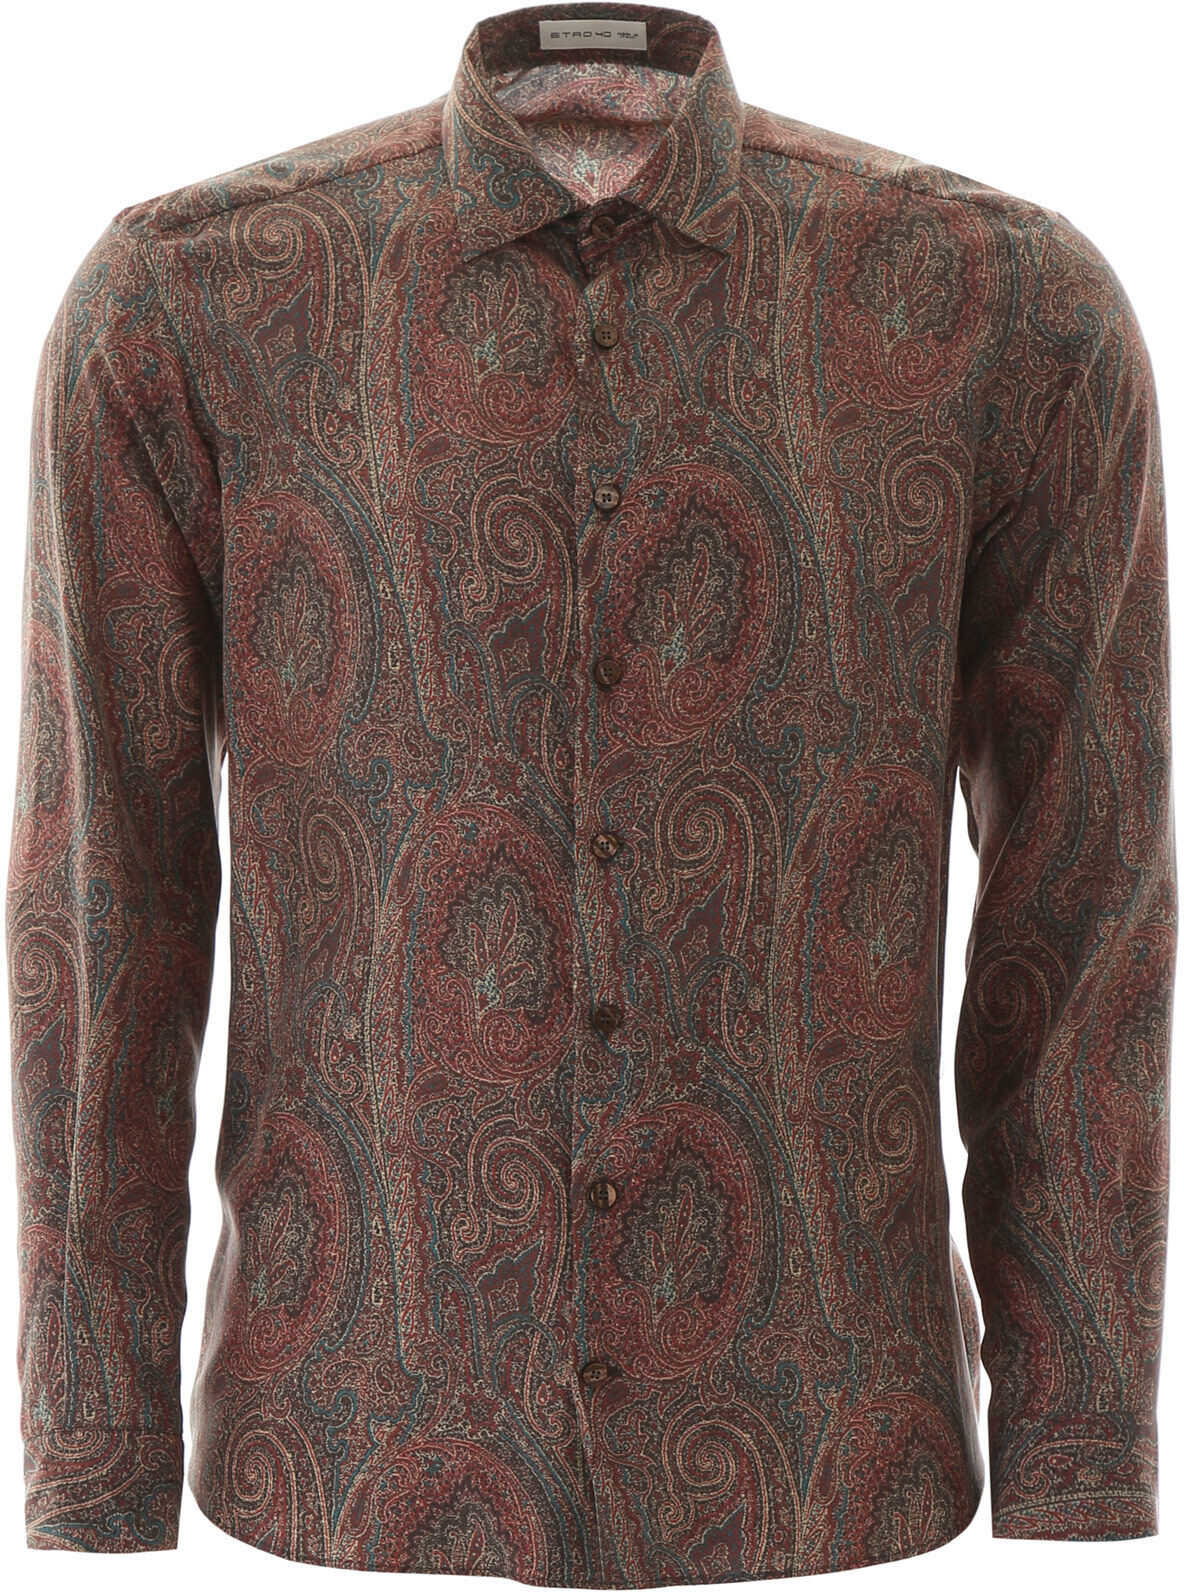 ETRO Silk Paisley Shirt MARRONE